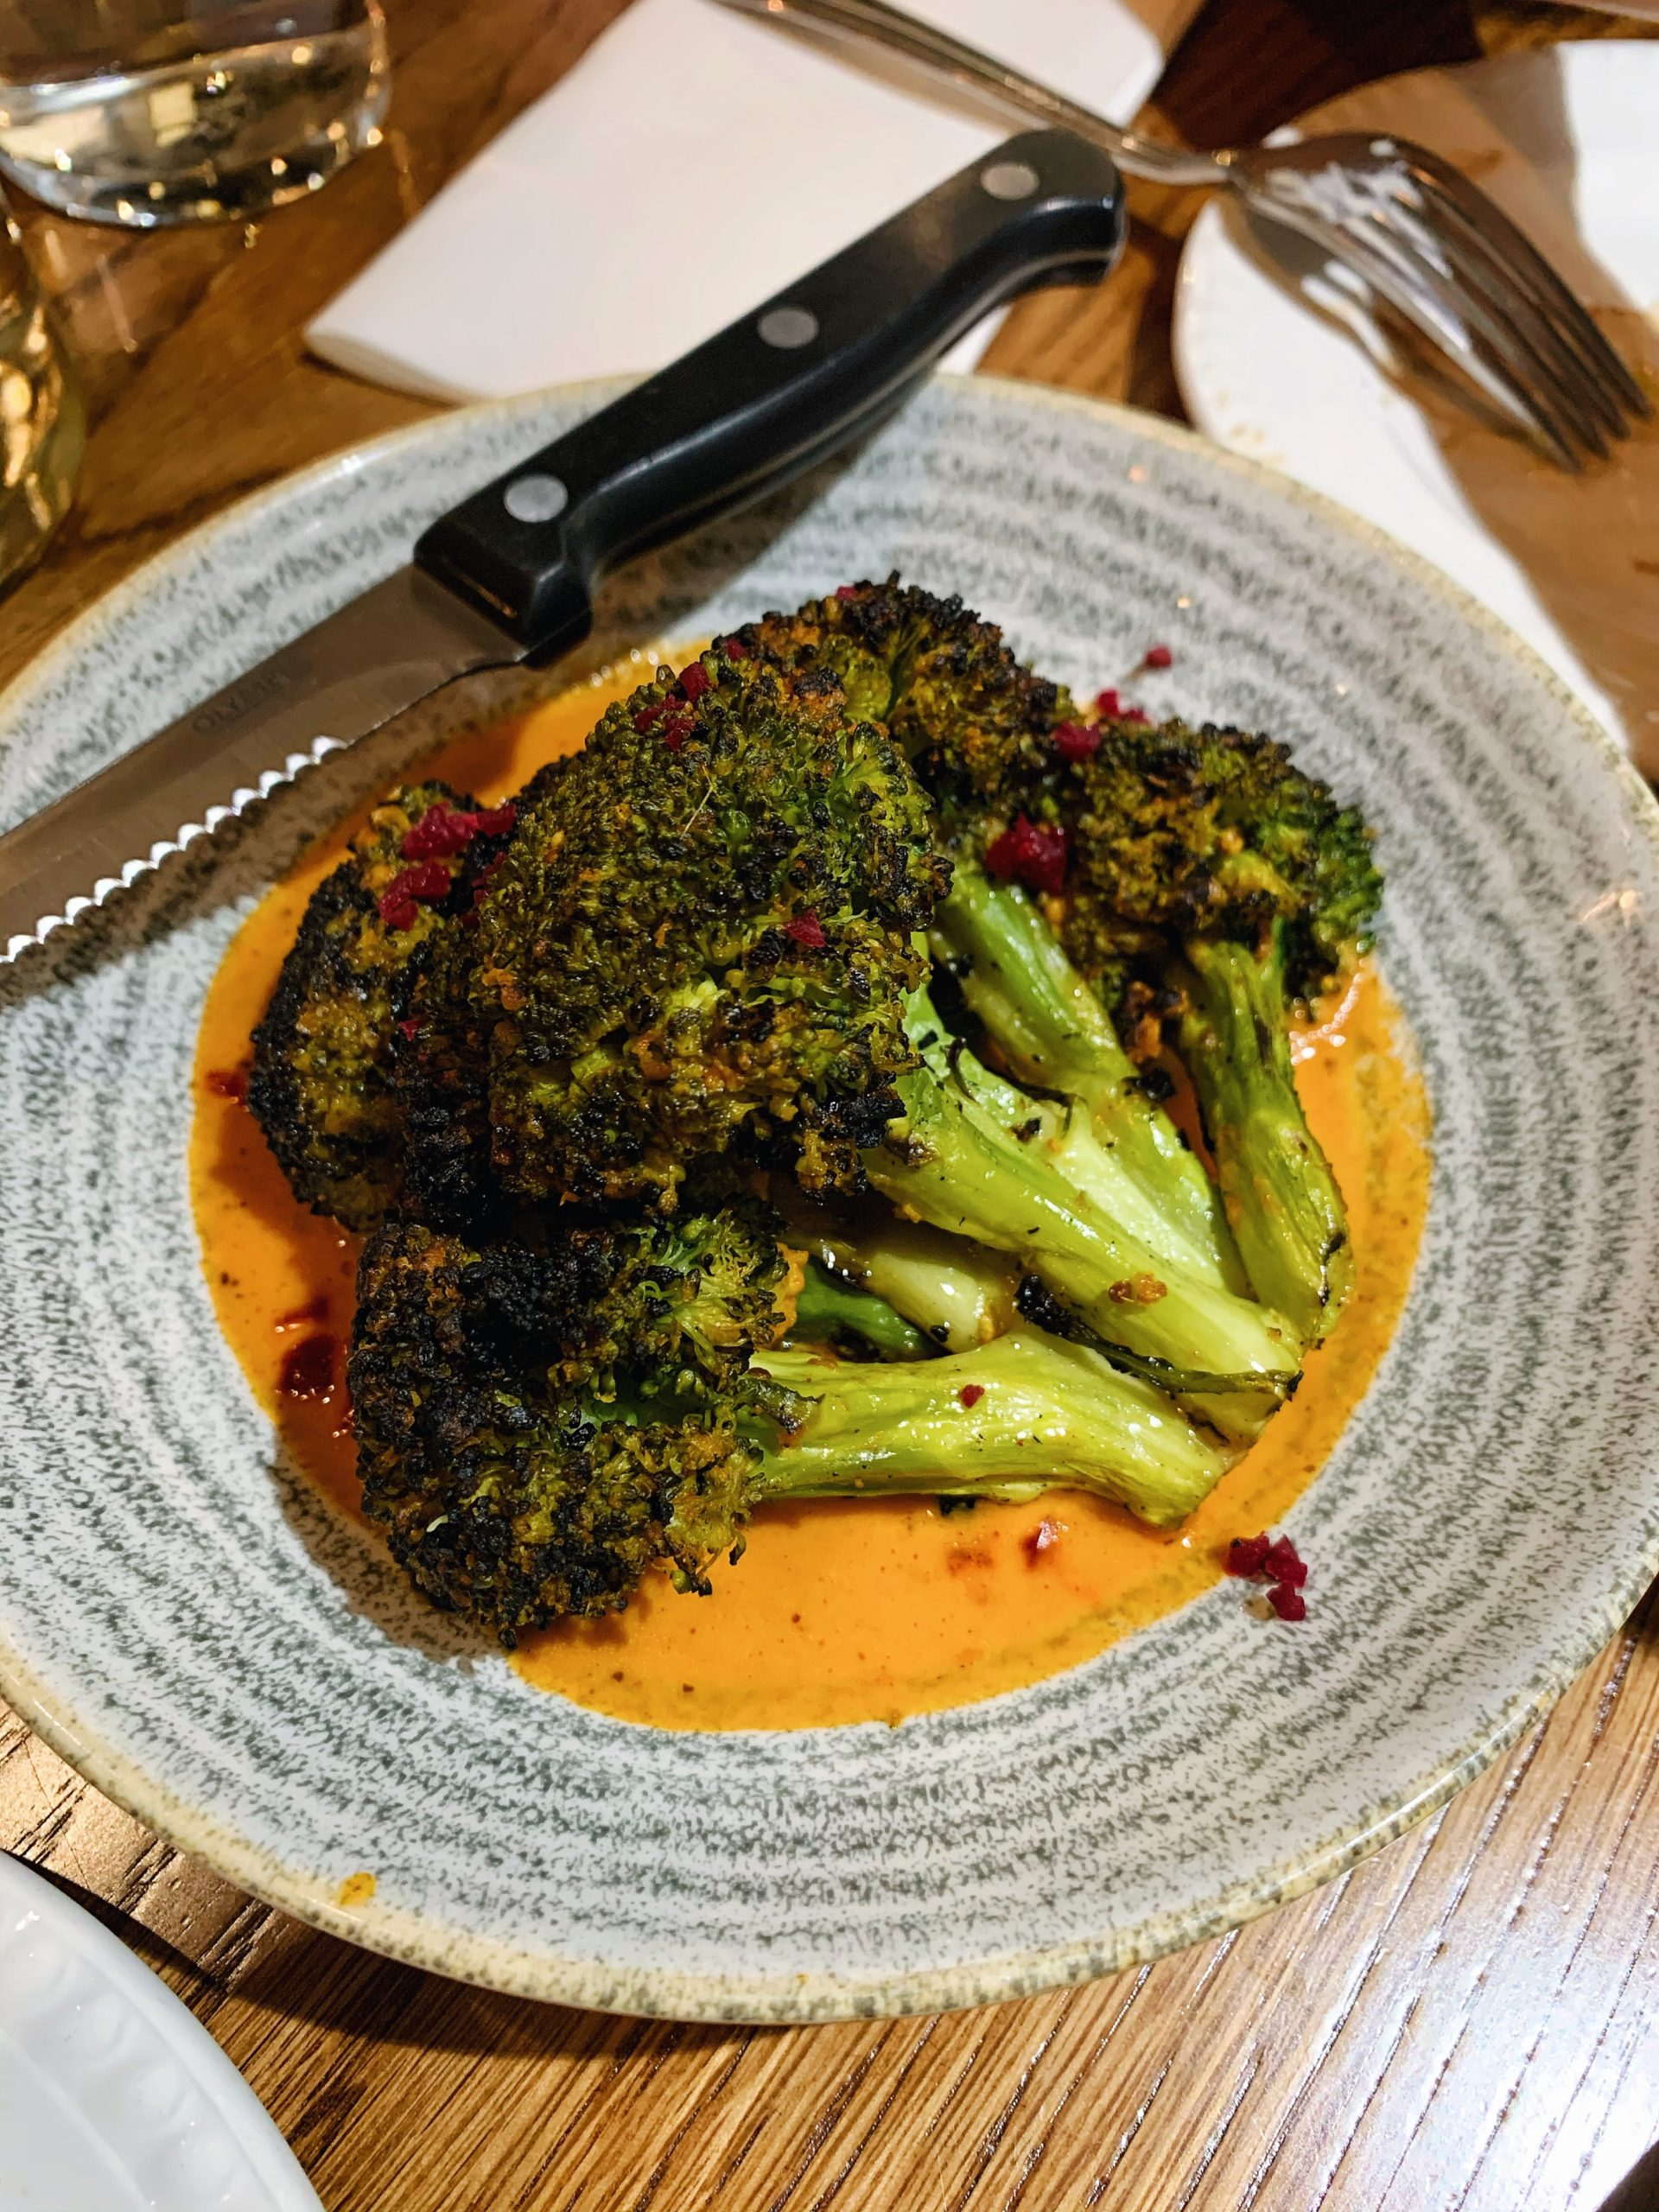 Sigree grilled mustard broccoli served on a bed of orange sauce on a grey circular striped plate